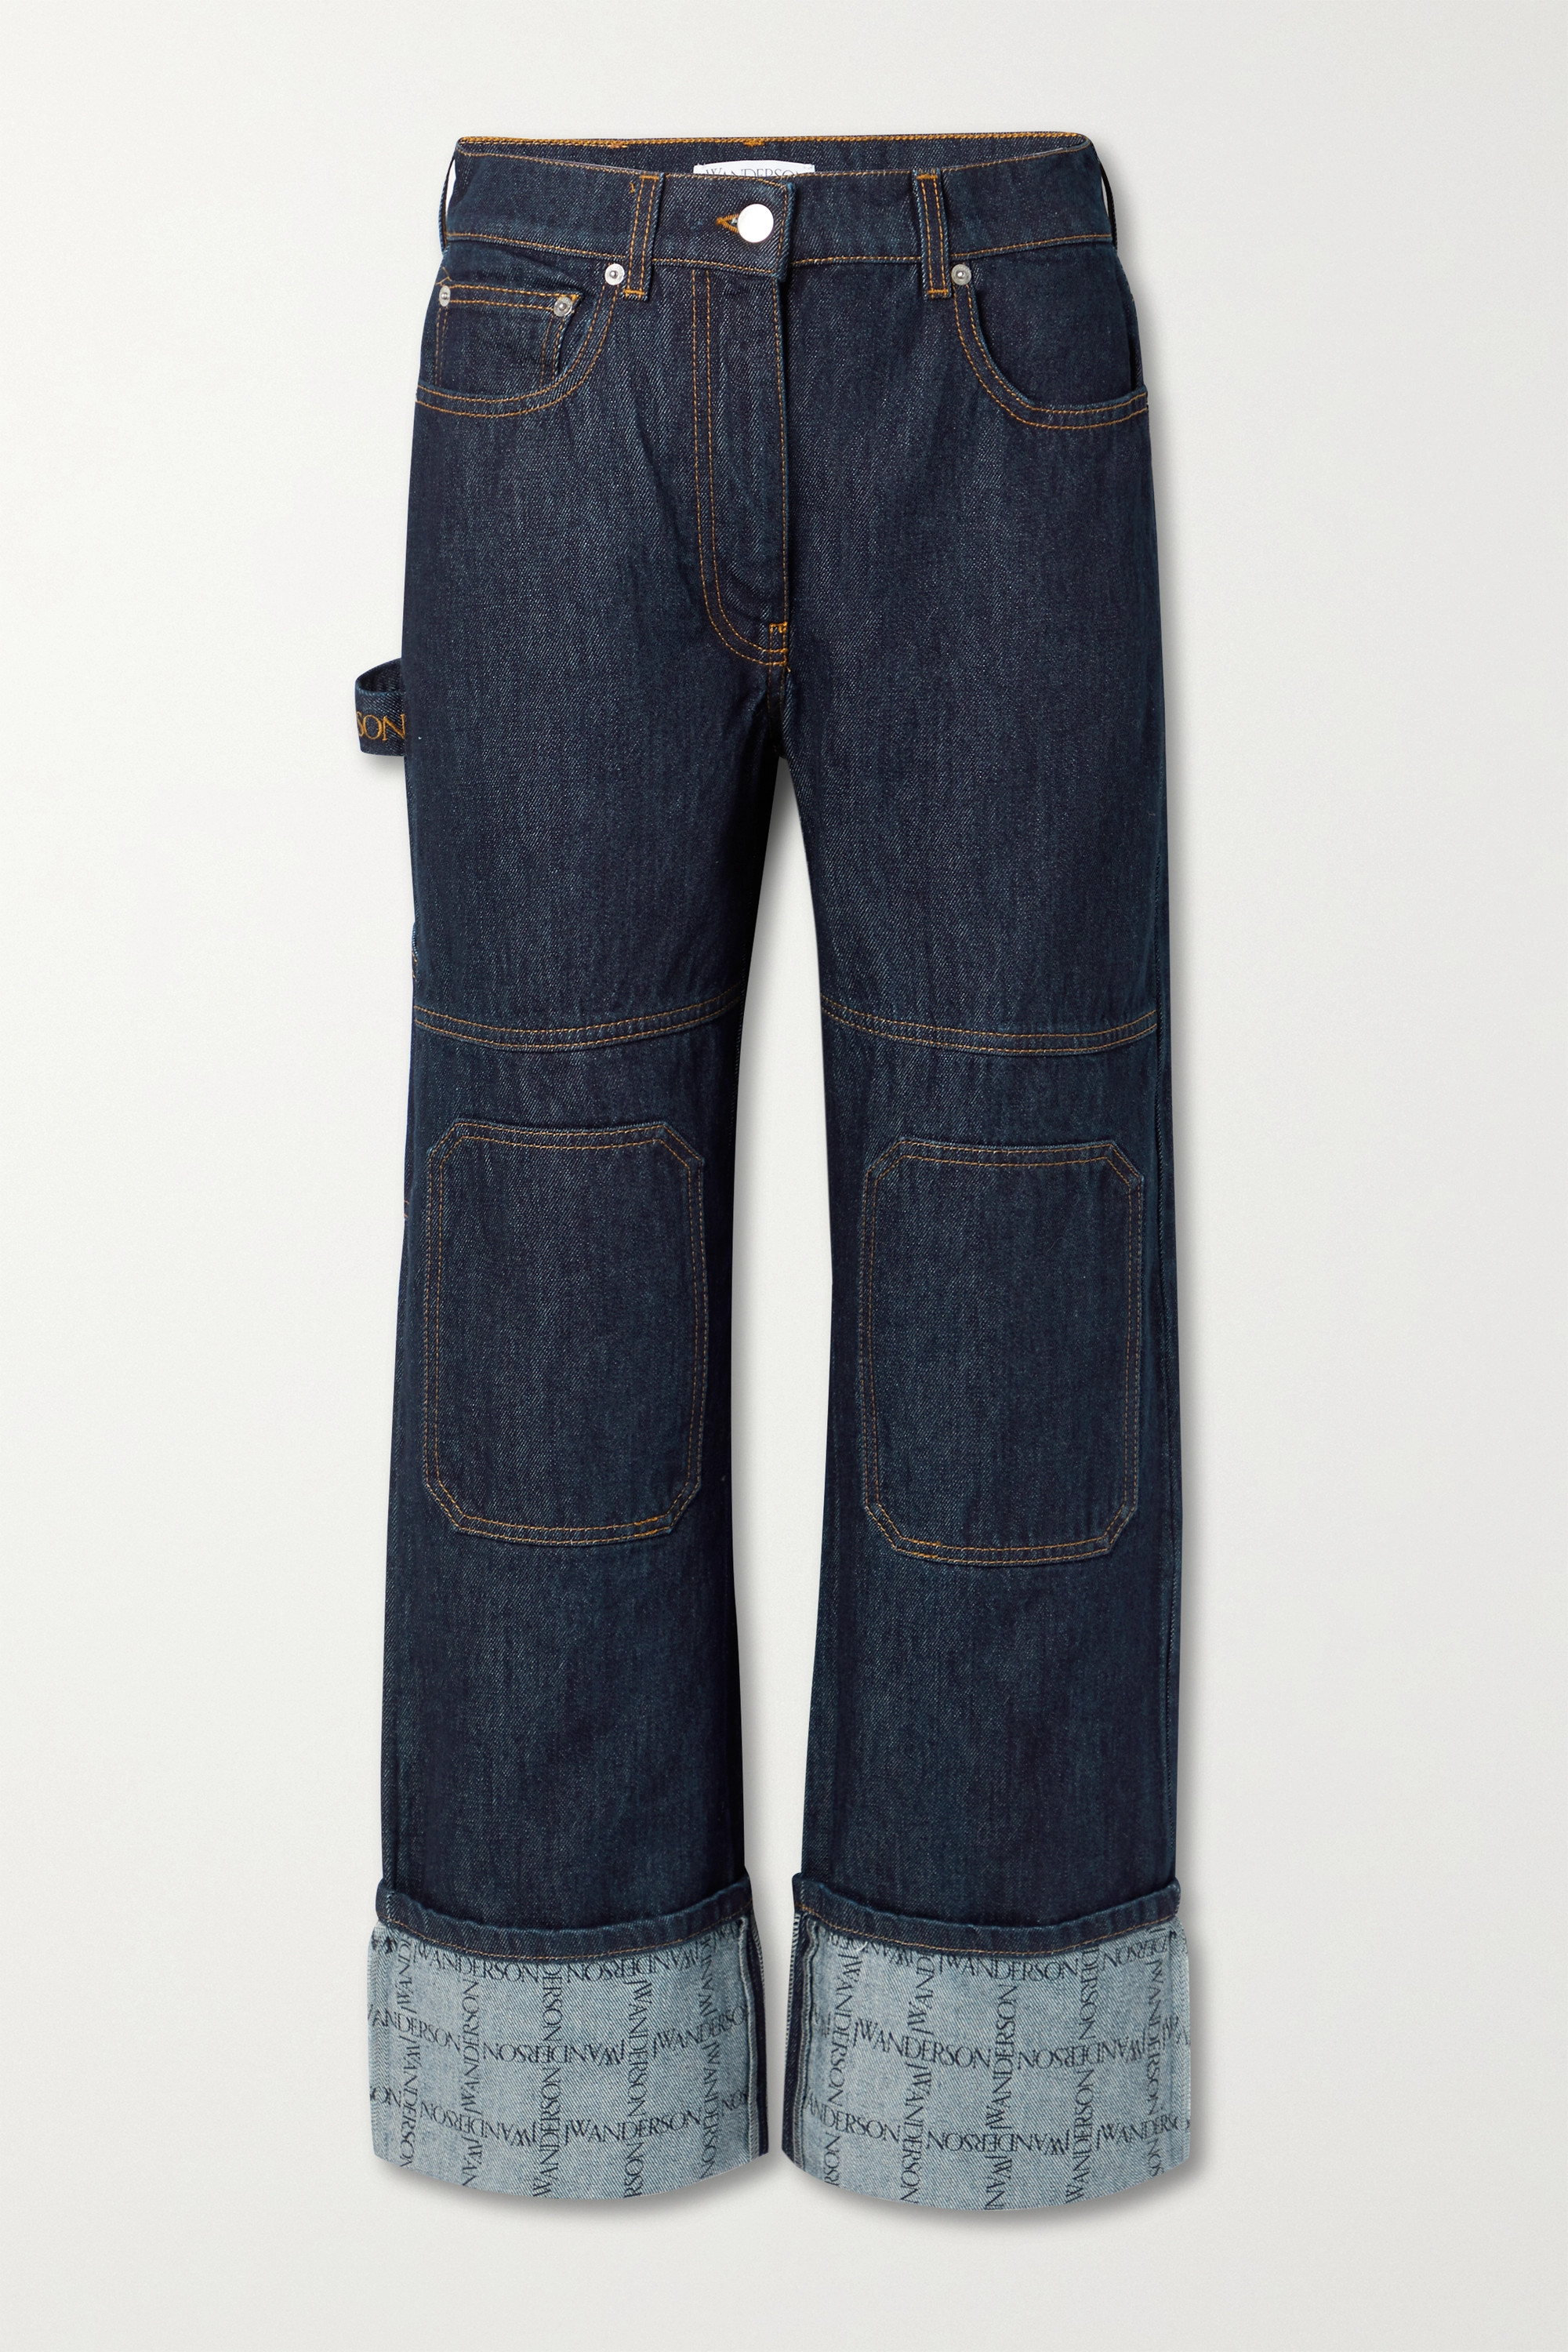 JW Anderson - Printed high-rise straight-leg jeans